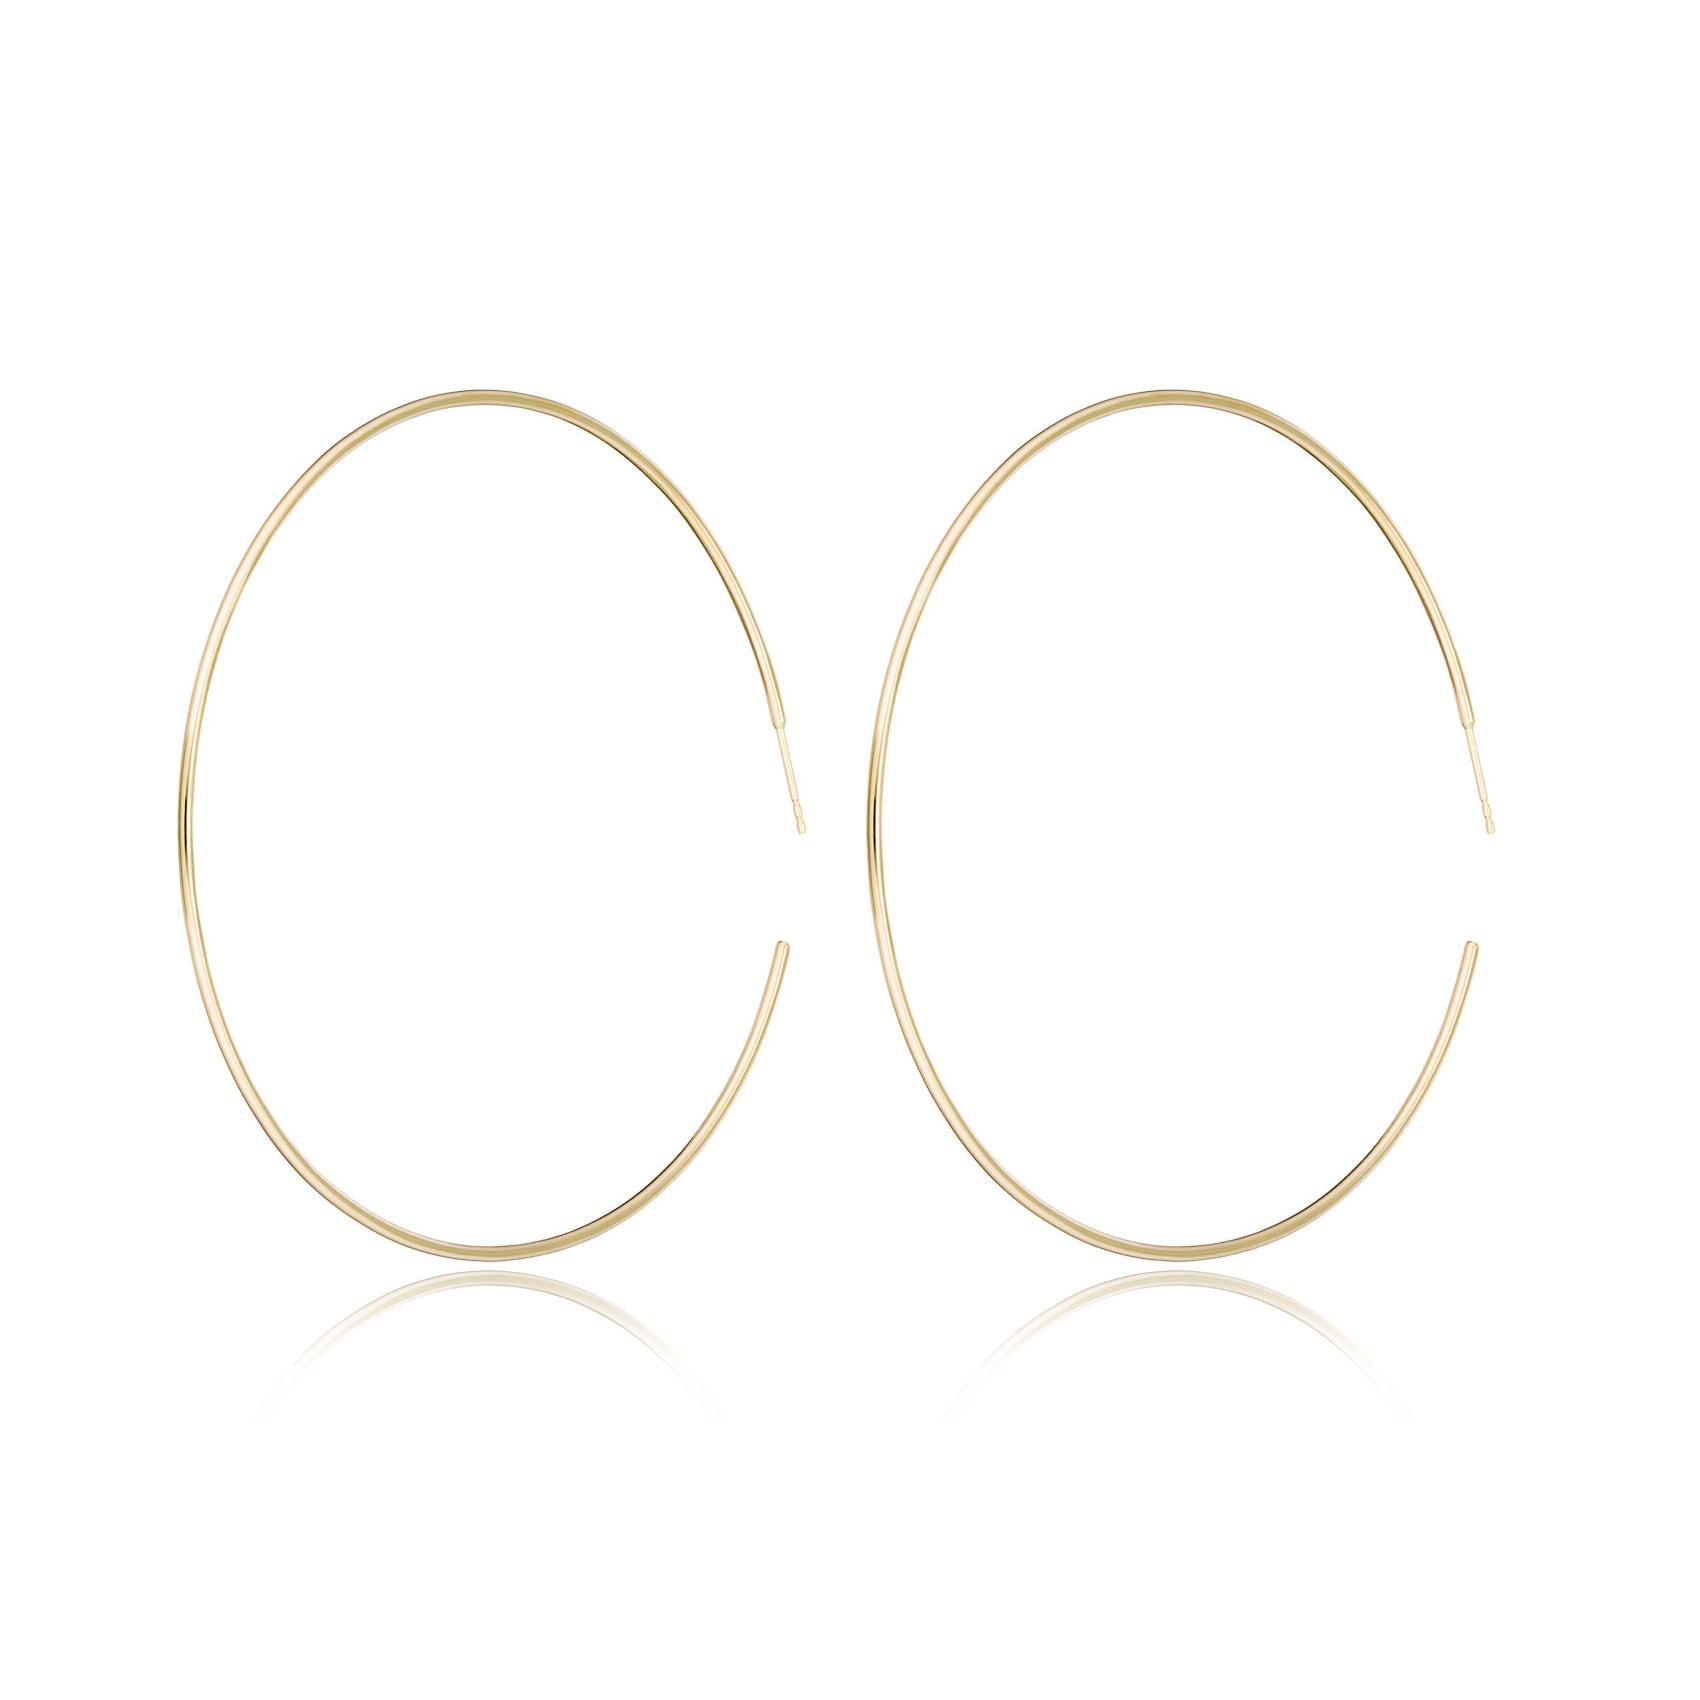 14K Yellow gold extra large two and a half inch hoops by Valerie Madison Jewelry